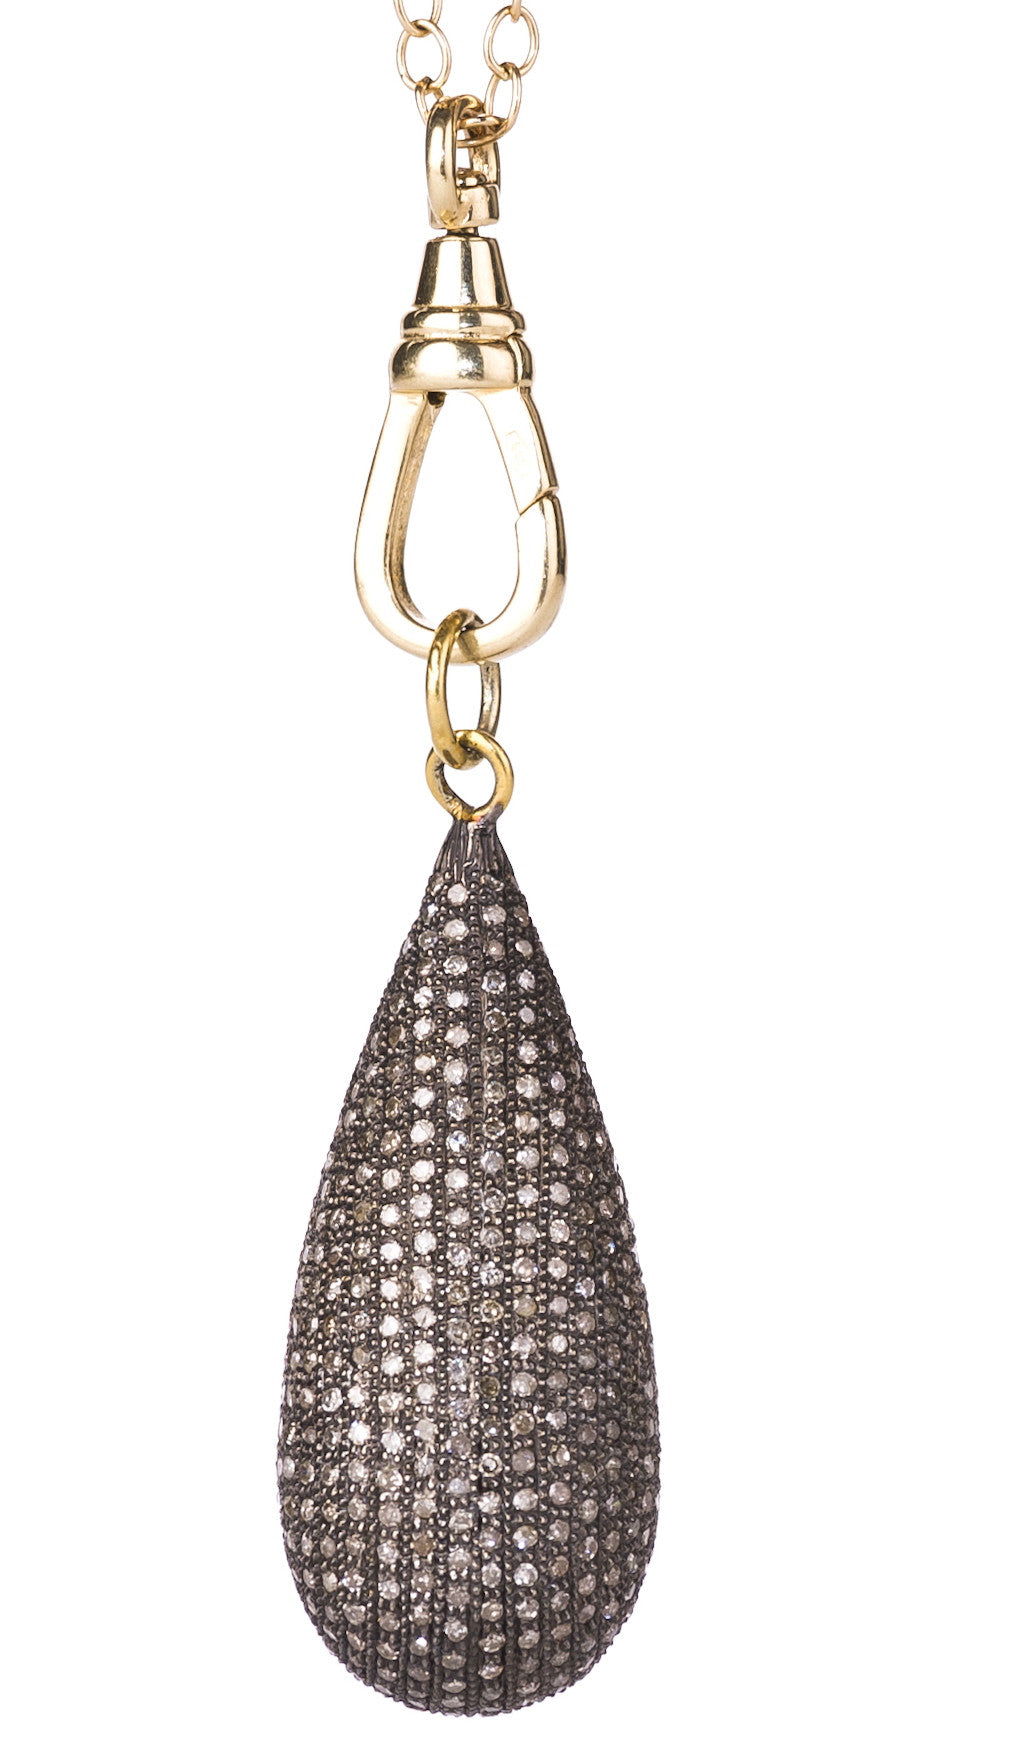 Lera Jewels large diamond teardrop necklace